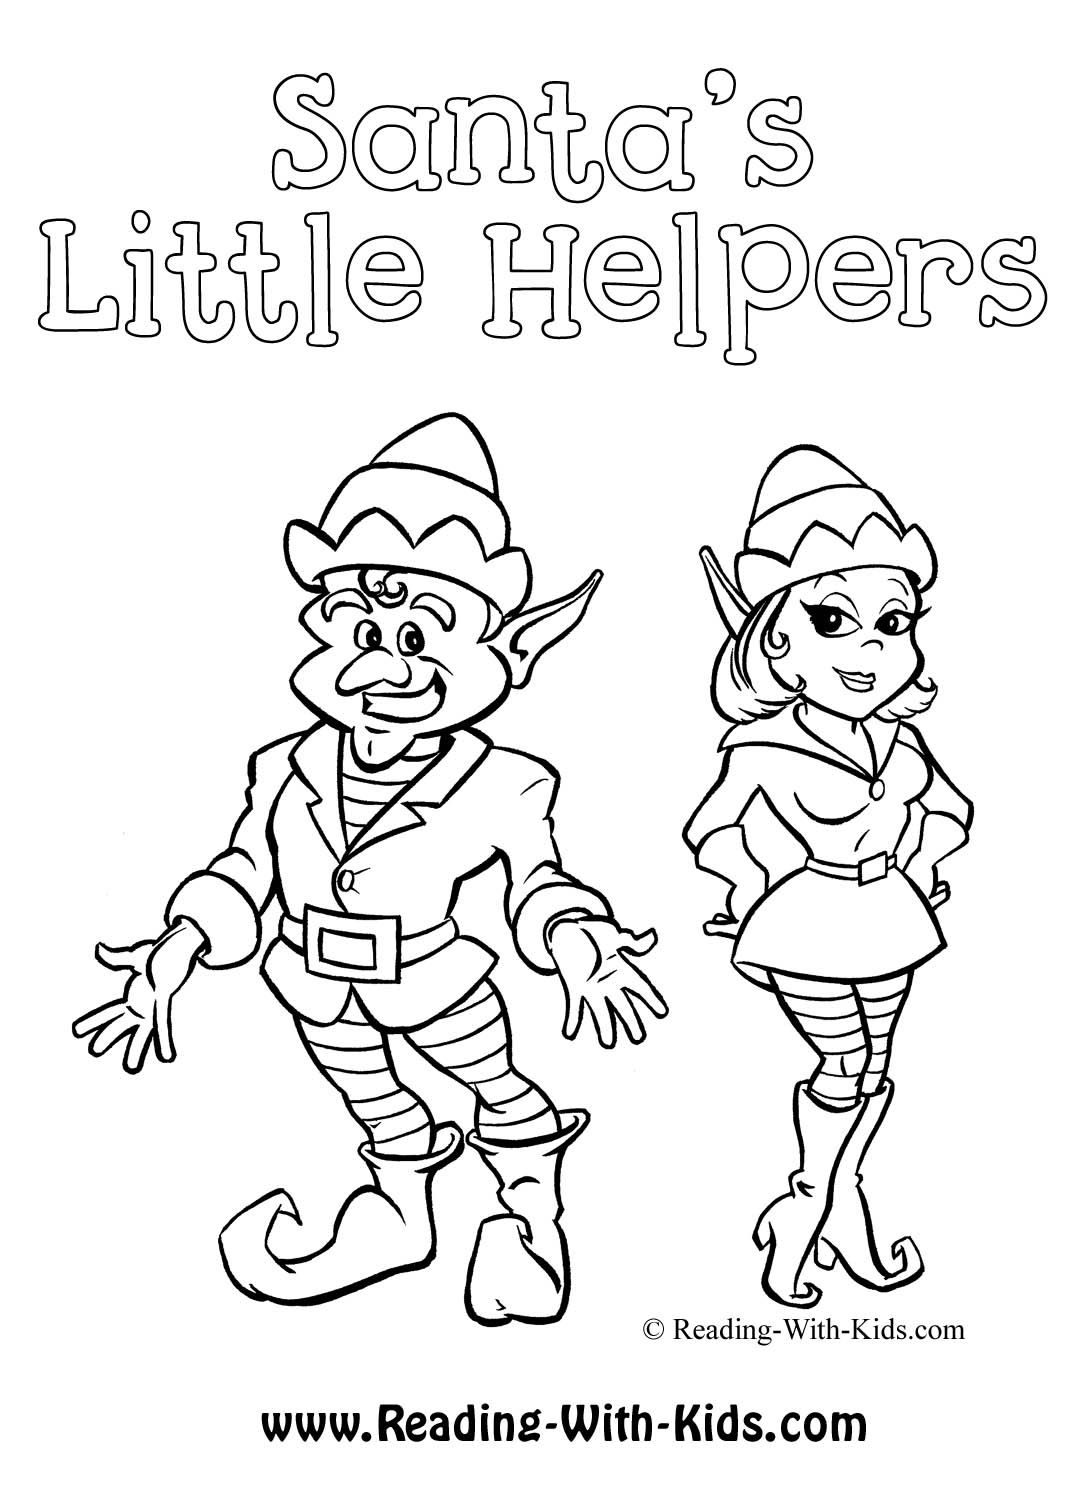 Santa S Little Helpers Elf Coloring Sheet Elves Christmas Coloringsheets Family Coloring Pages Lego Coloring Pages Coloring Pages